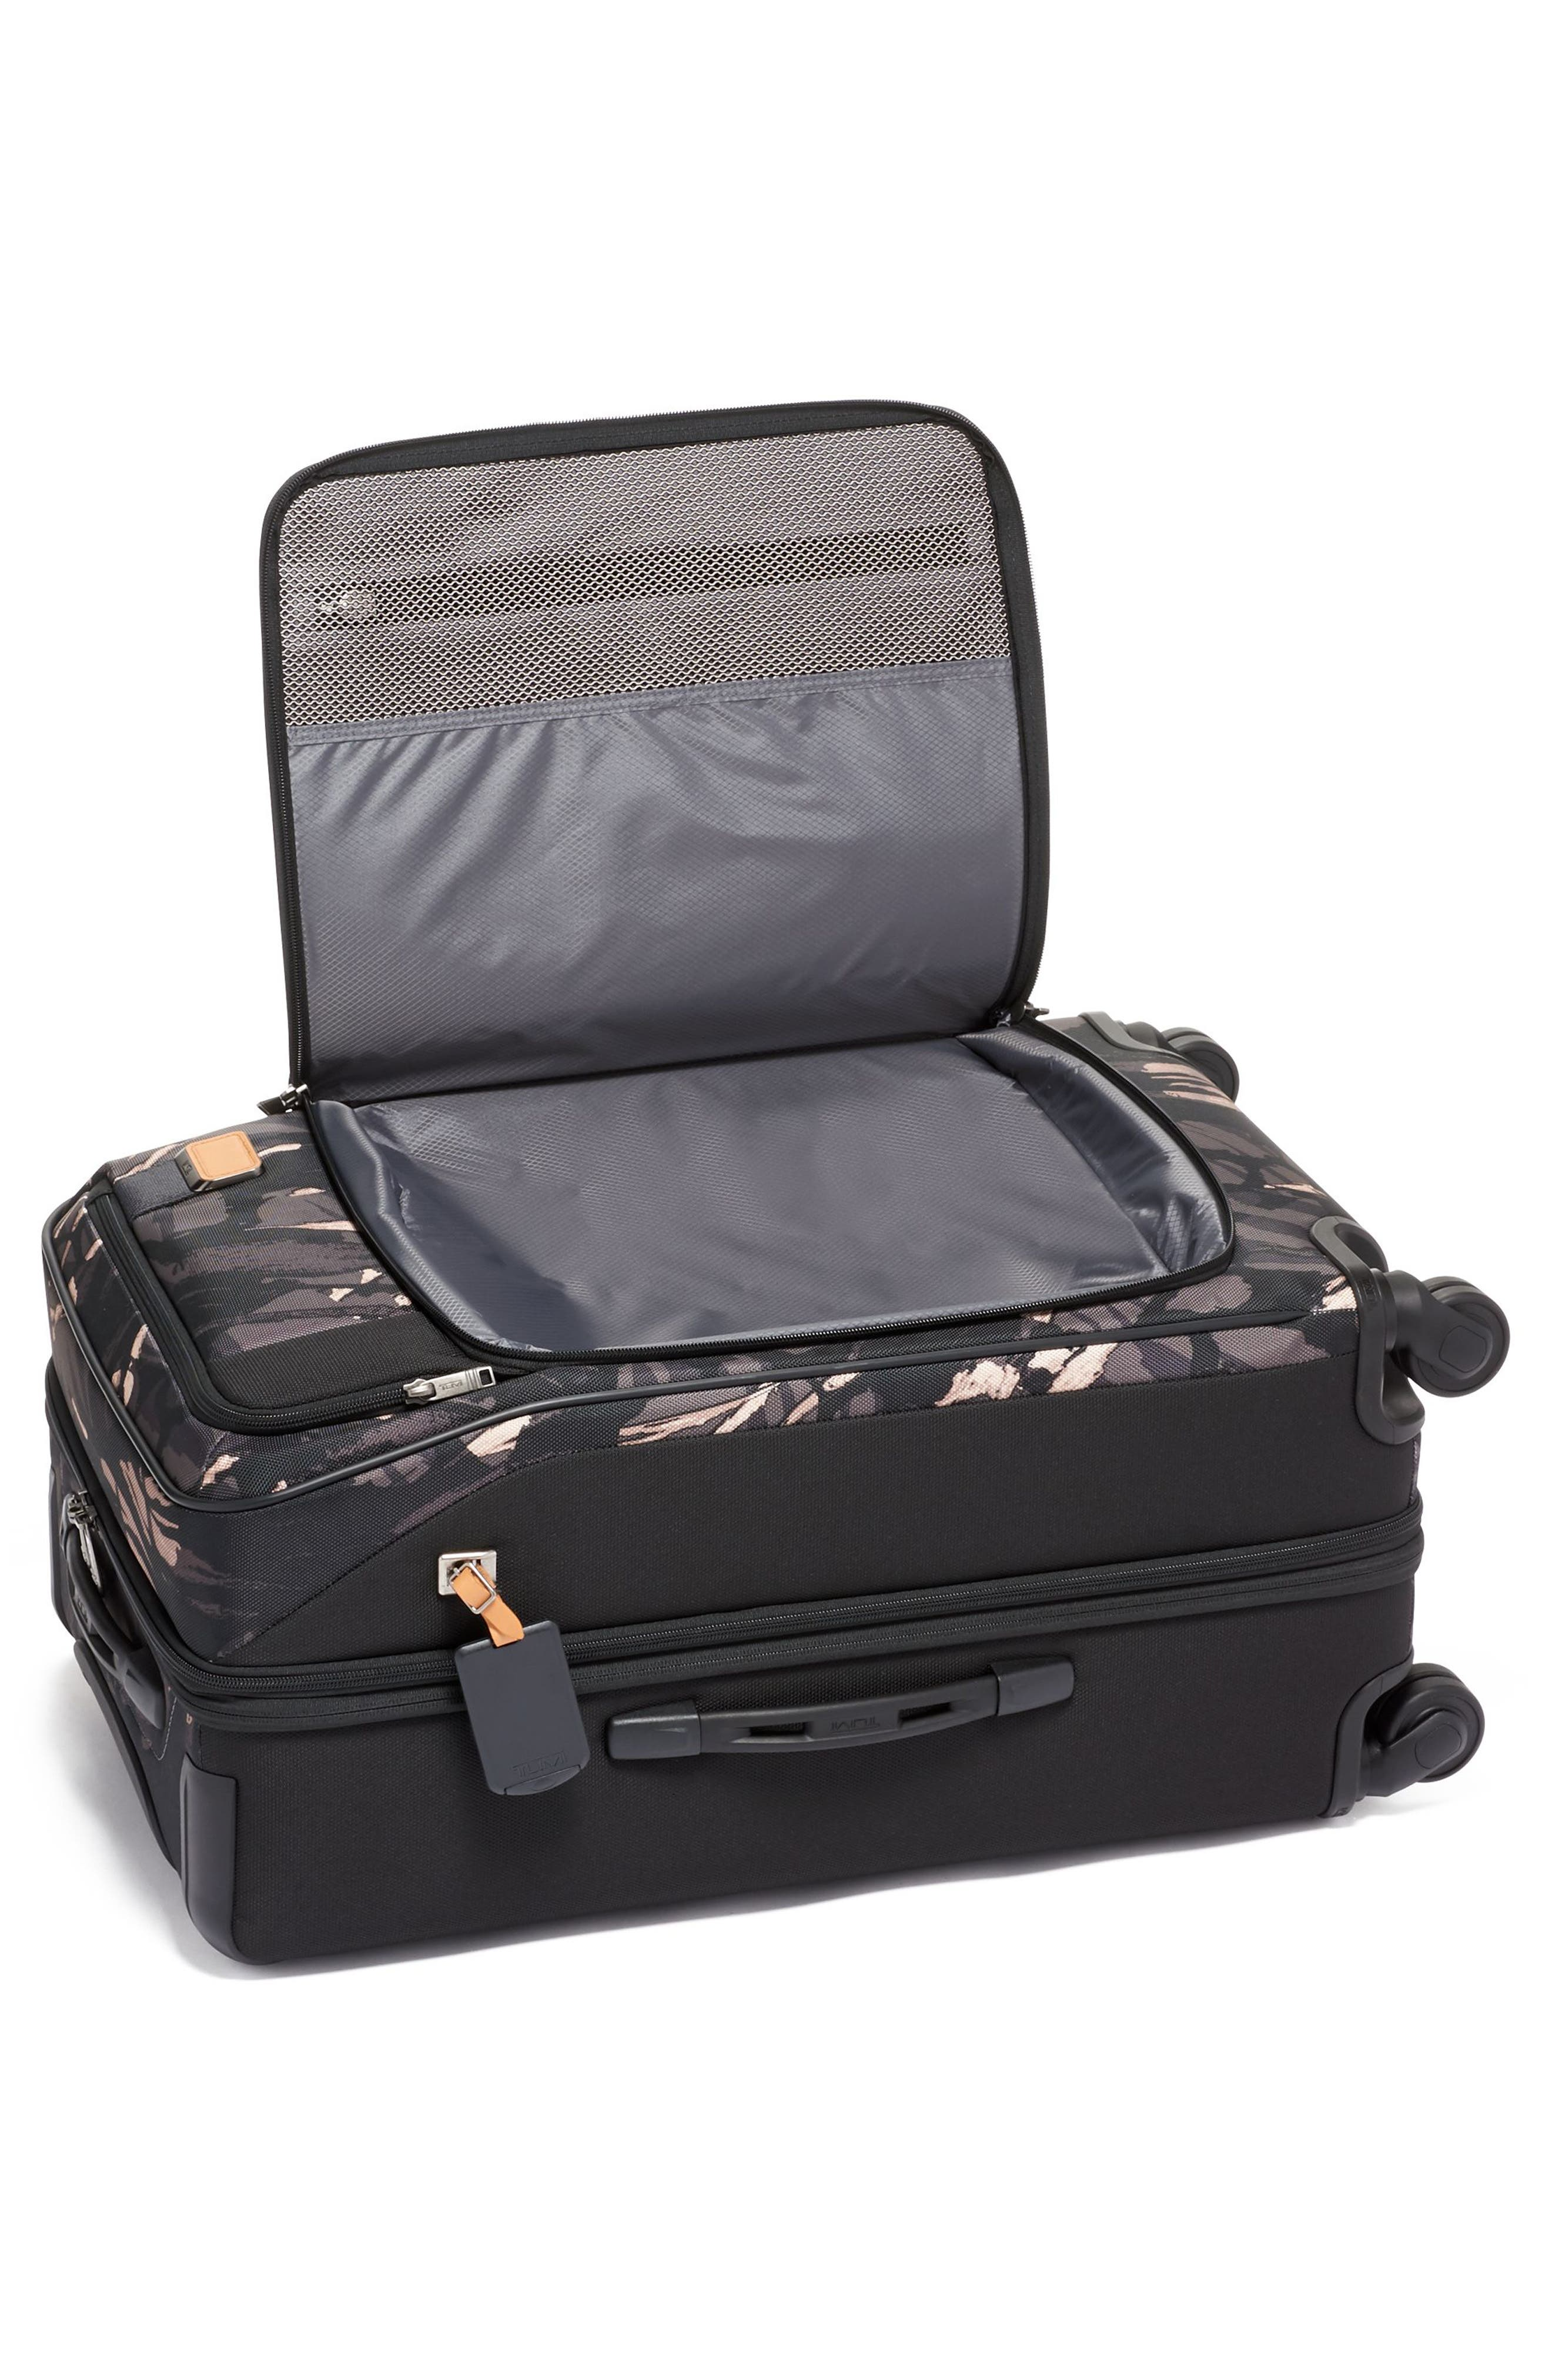 Merge Short Trip Expandable Rolling Packing Case,                             Alternate thumbnail 5, color,                             GREY HIGHLANDS PRINT